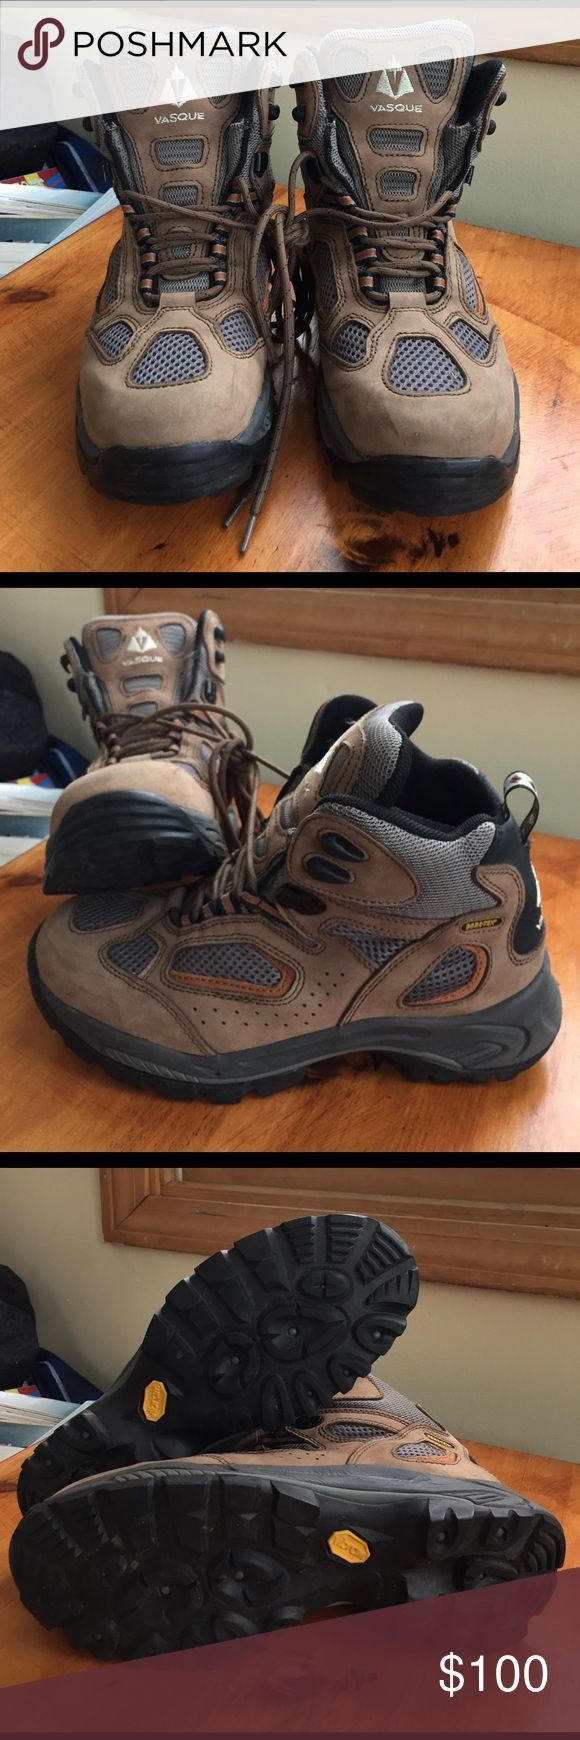 Men's size 9.5 VASQUE boots Brand new boots only worn once! These are too small for my dad. Offers are welcome! Vasque Shoes Boots